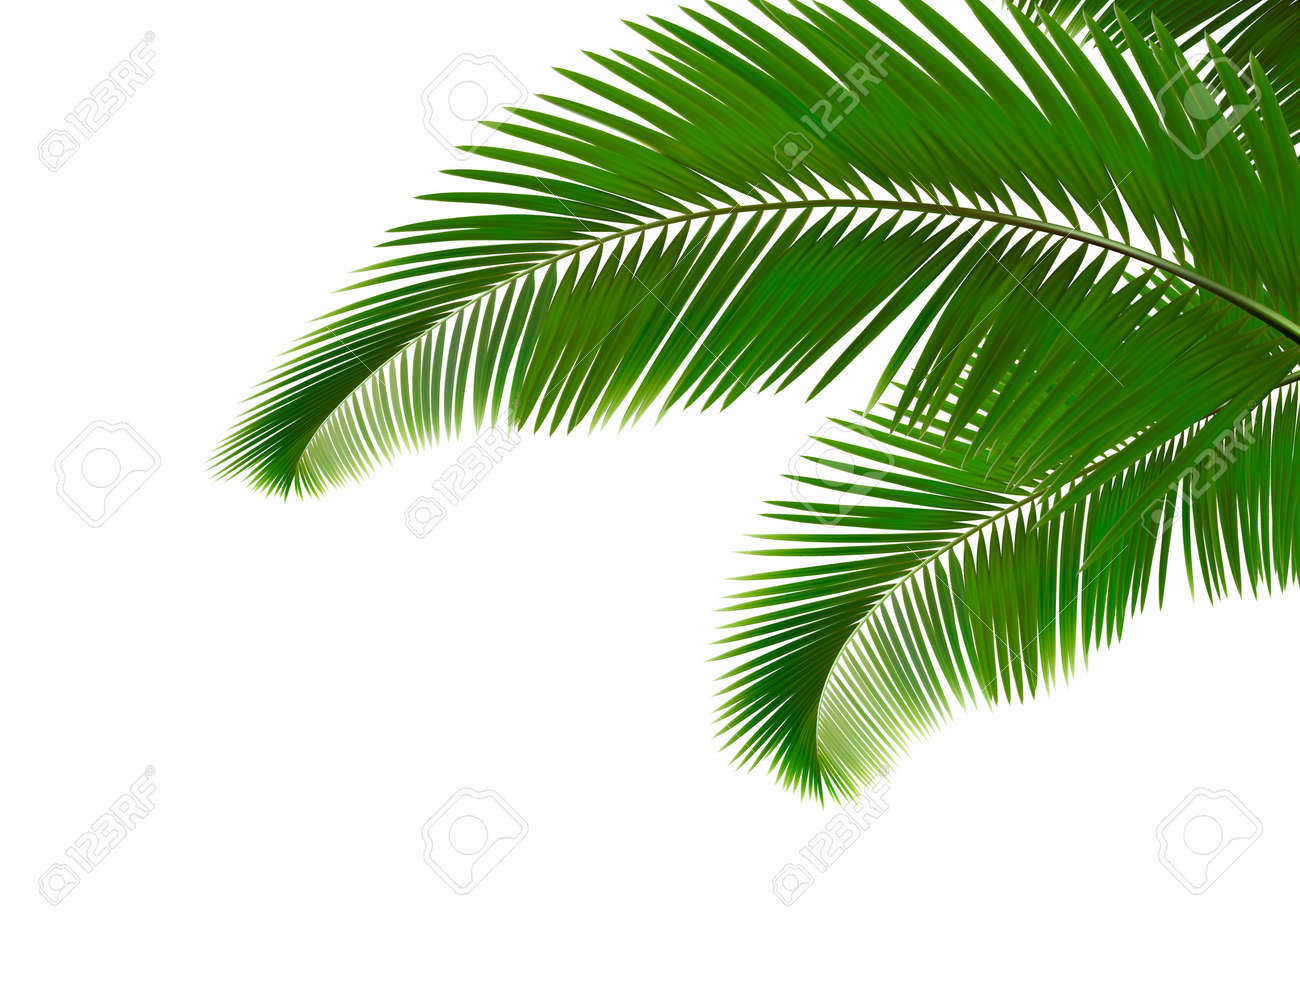 palm leaves on white background royalty free cliparts vectors and